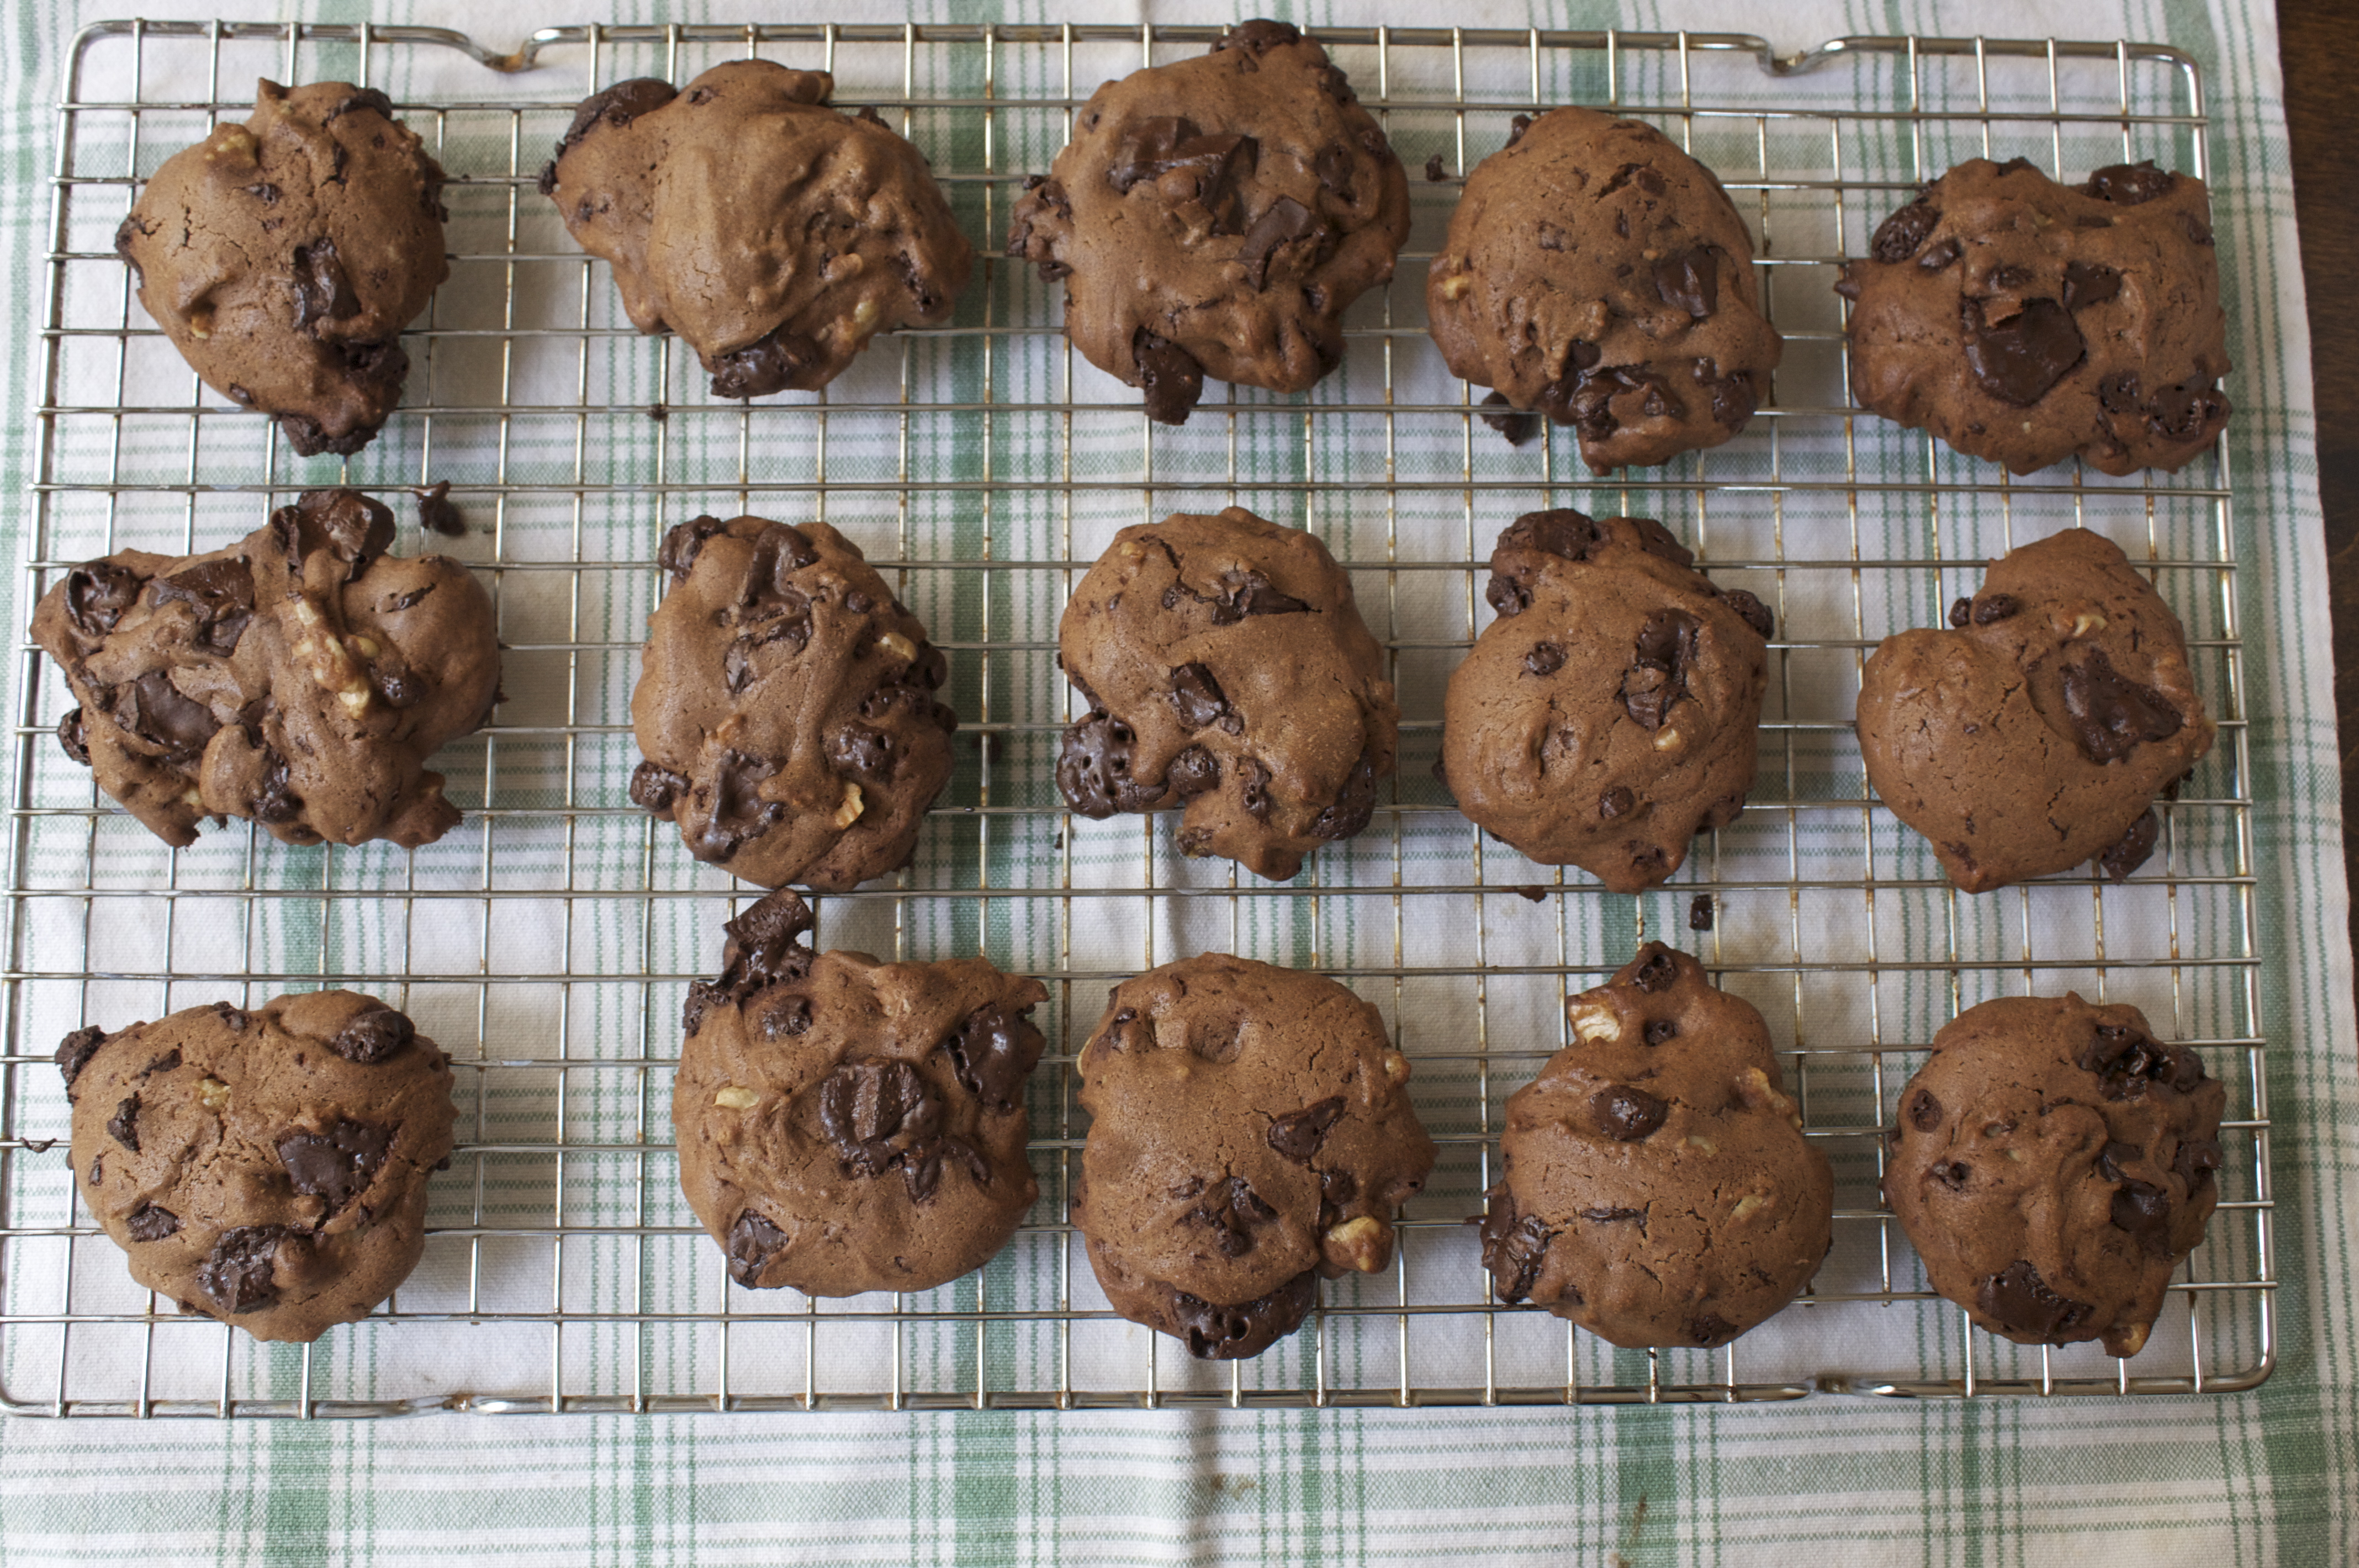 The chocolate chunks can get pretty messy after baking.